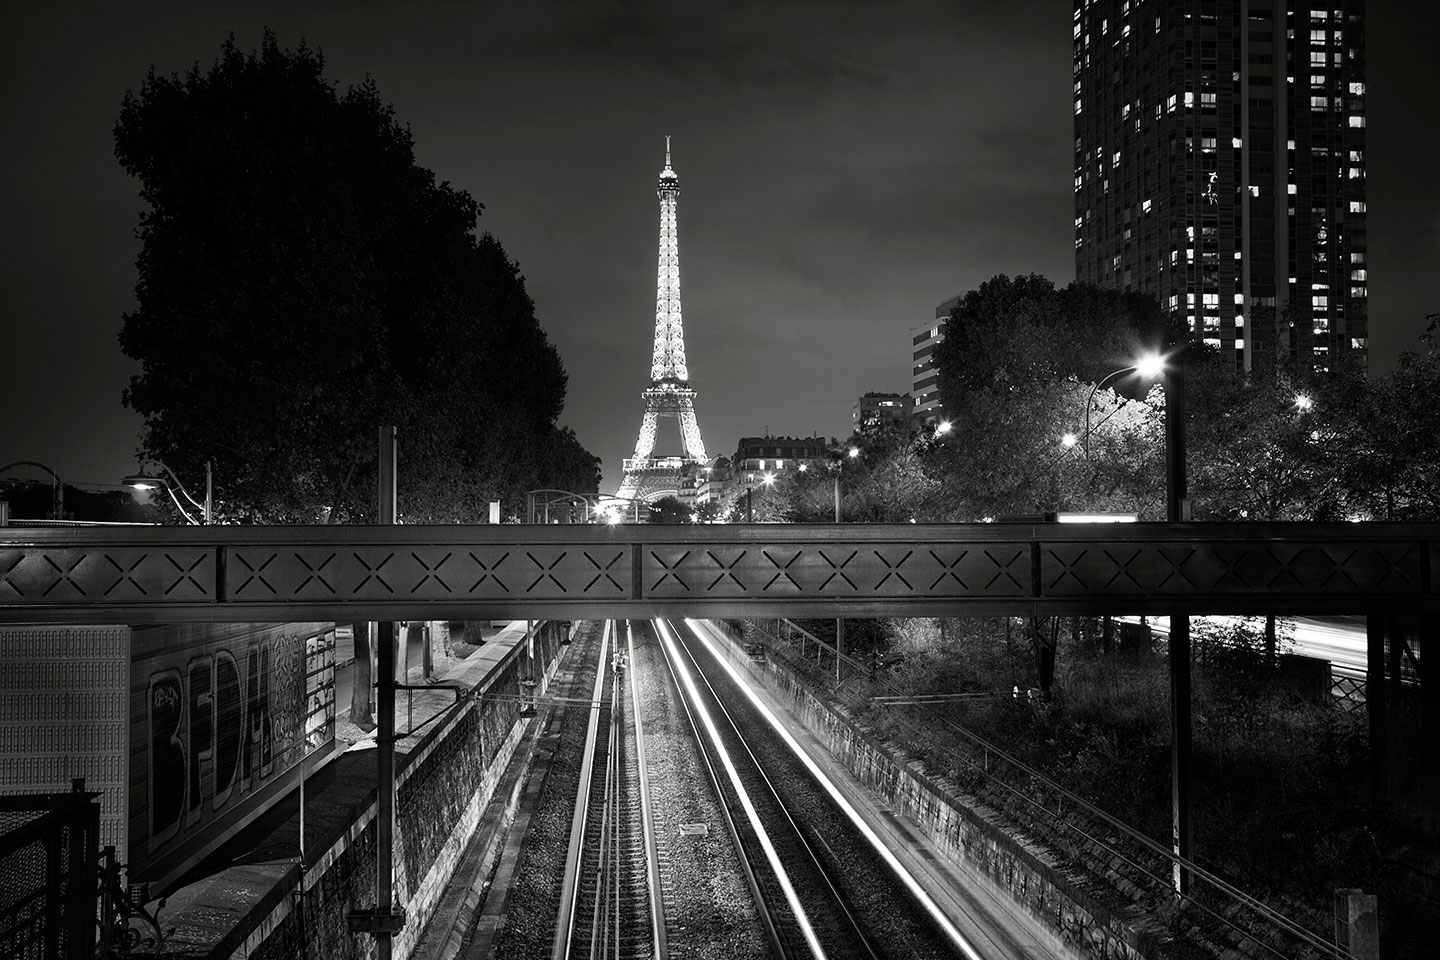 The Paris You Dream Of by joSon